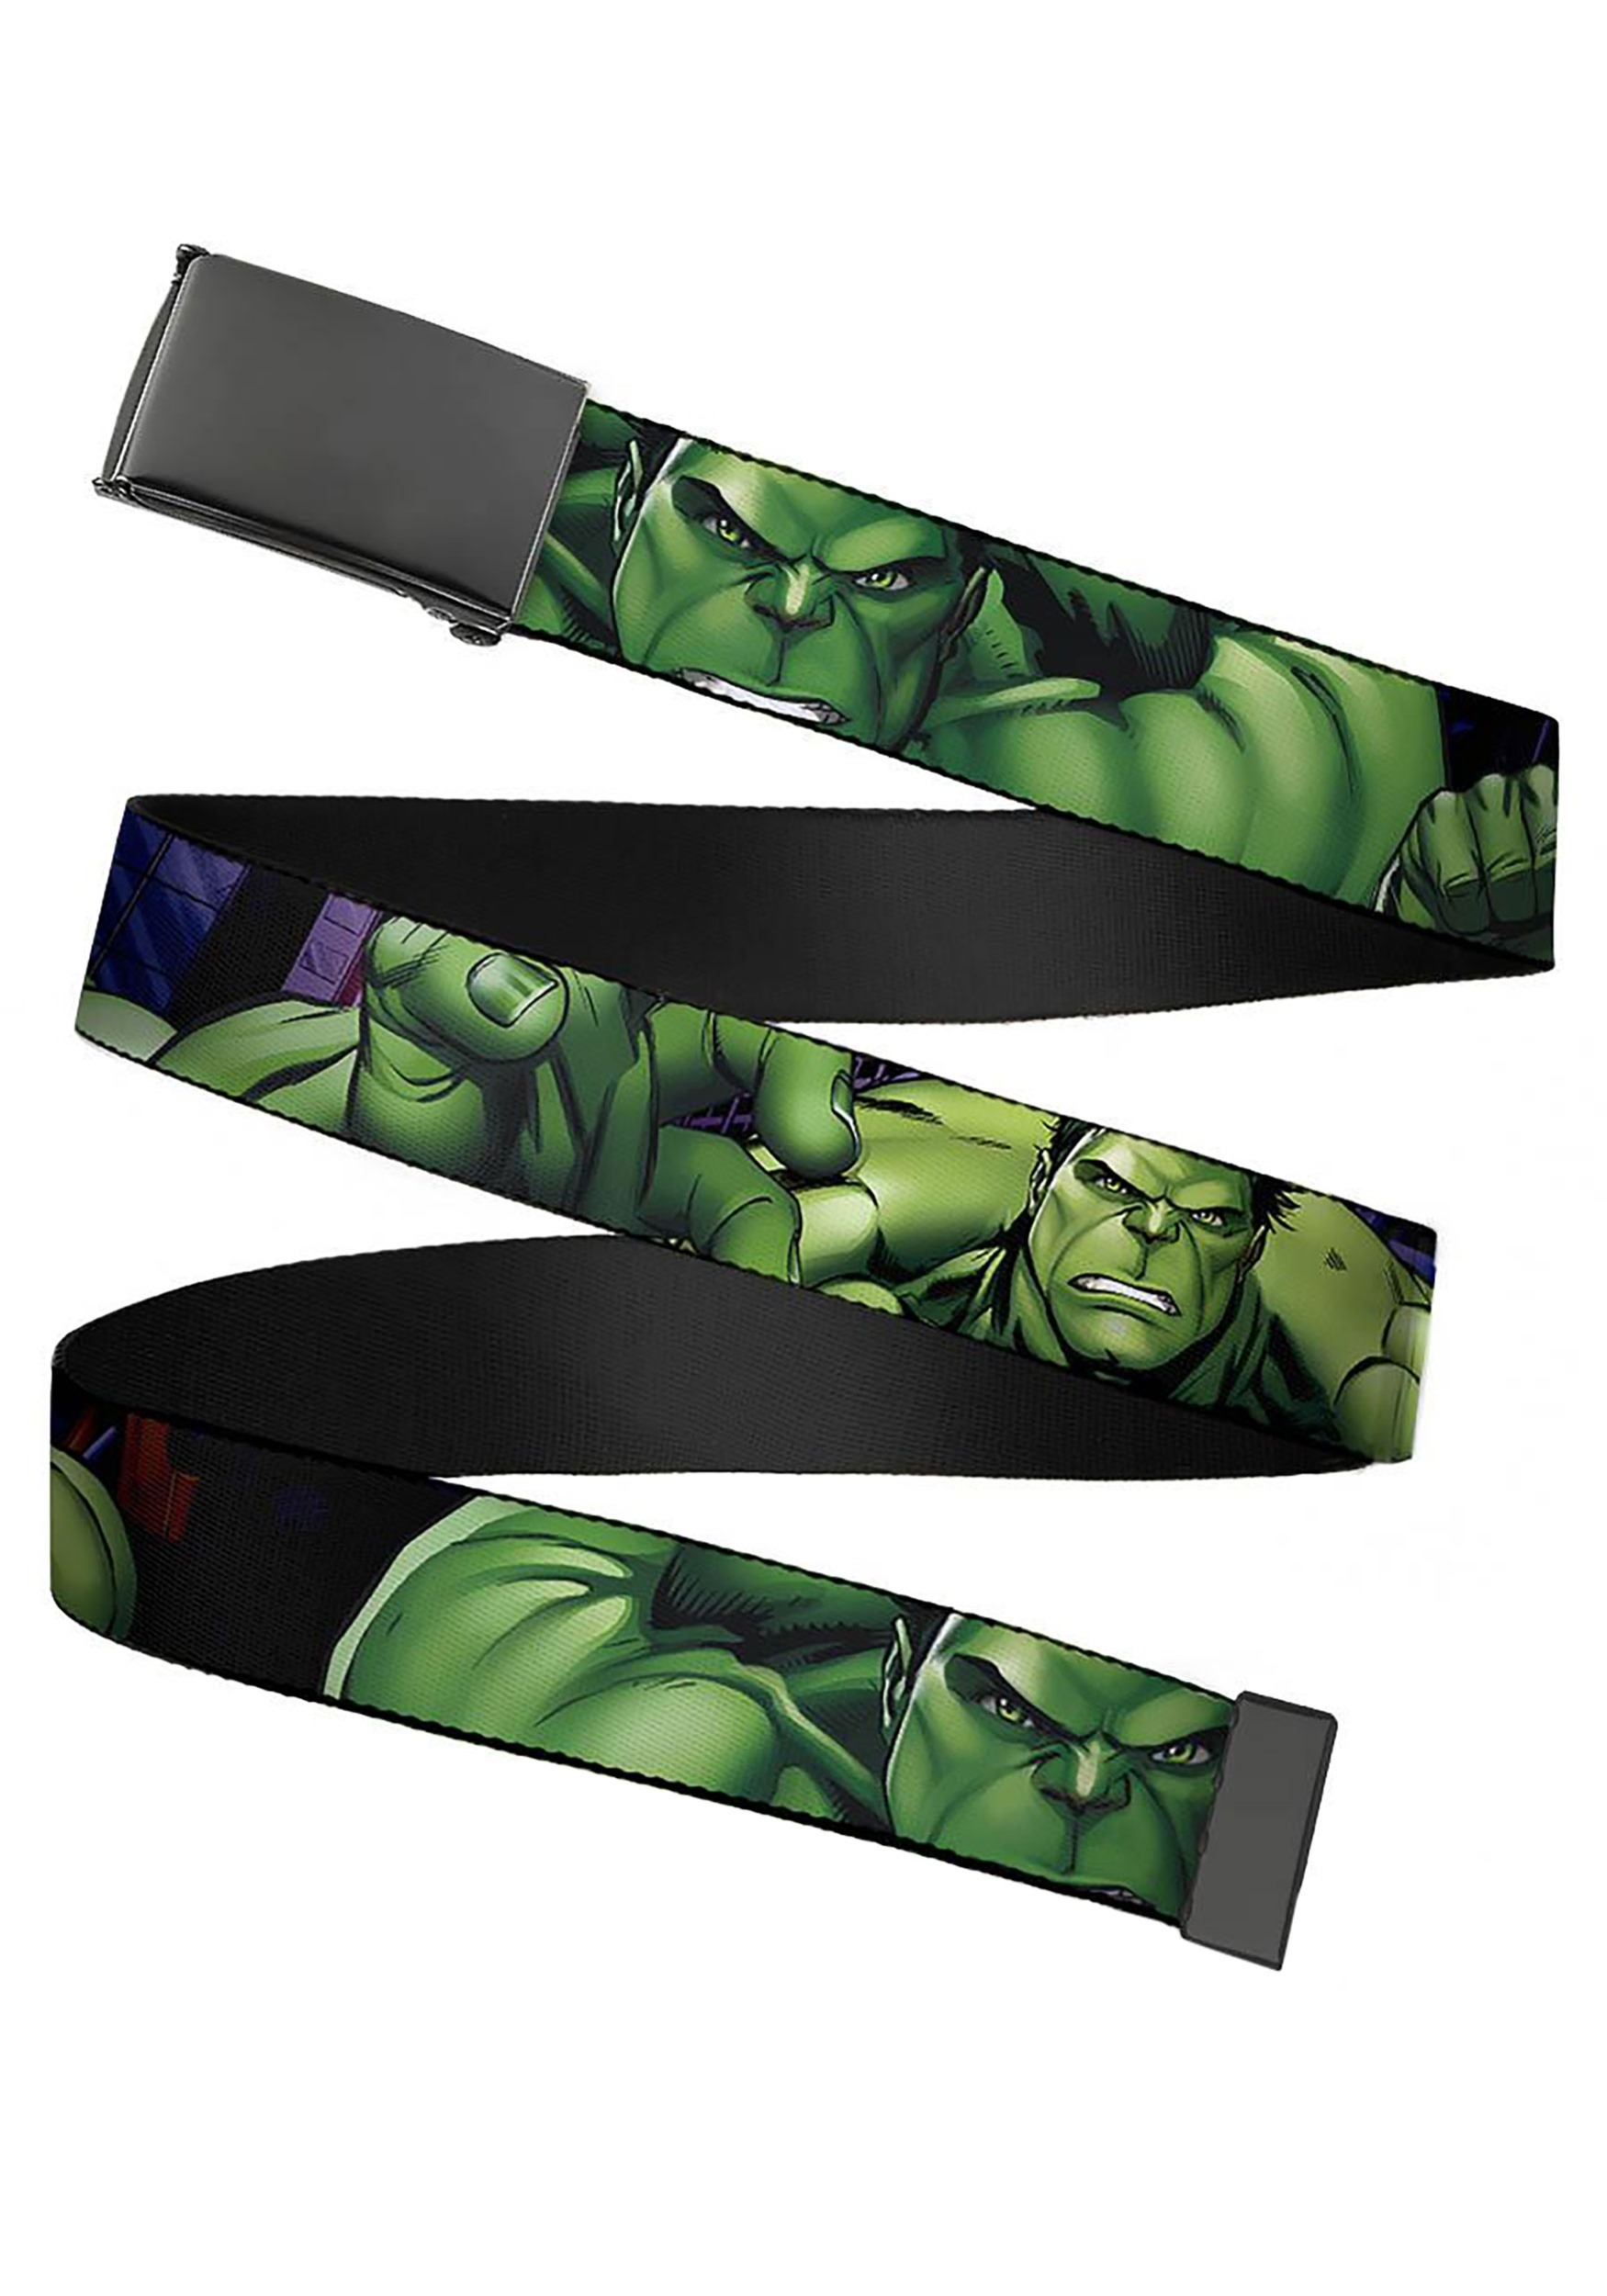 a2efacb88a4 Marvel The Incredible Hulk Buckle Web Belt update 1